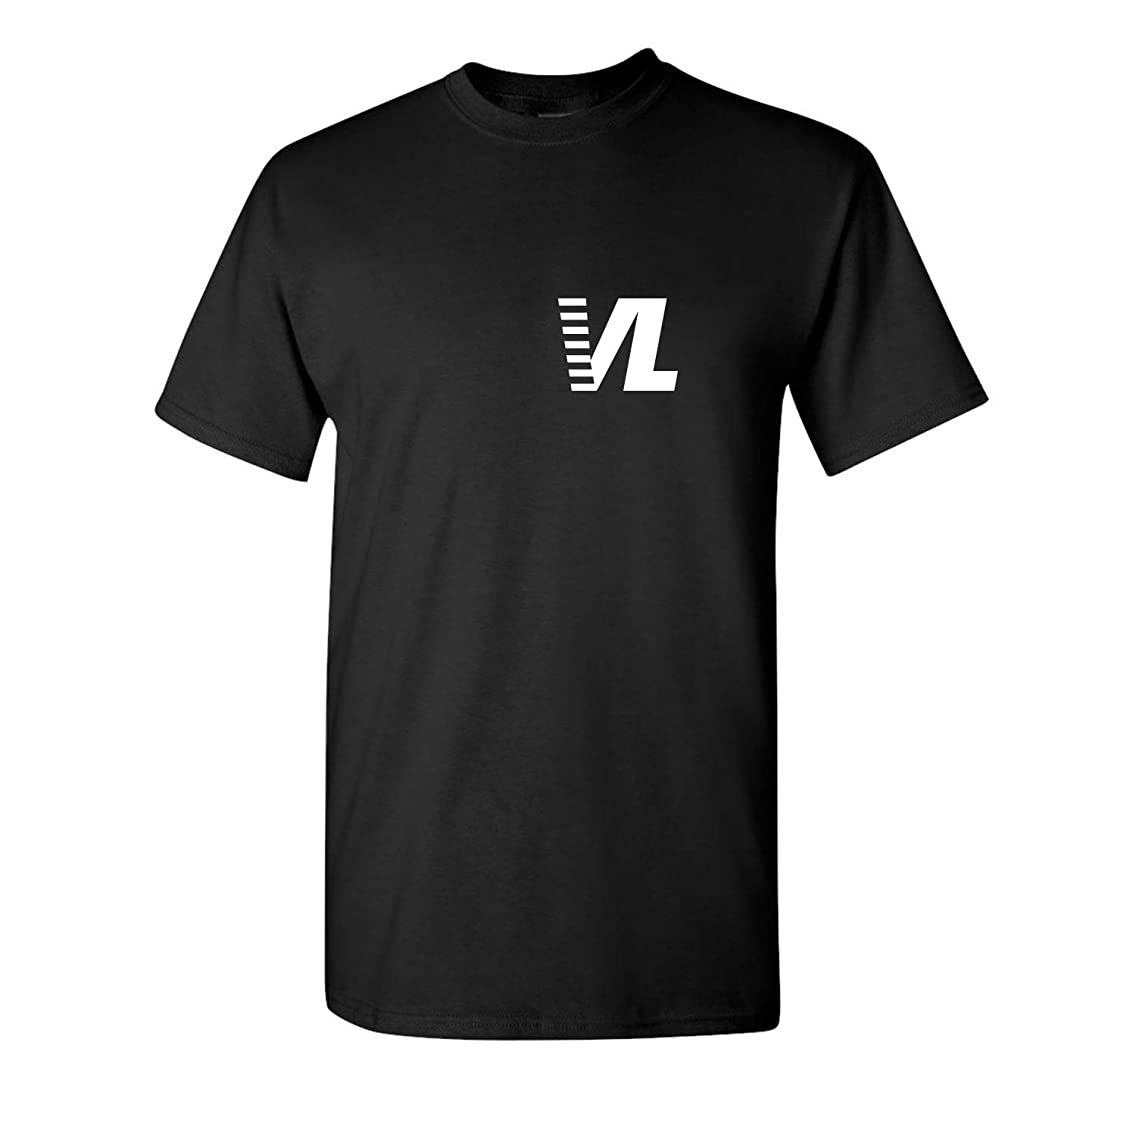 Nipsey Hussle Rest in Peace Victory Lap Adult Short Sleeve Tee Shirt